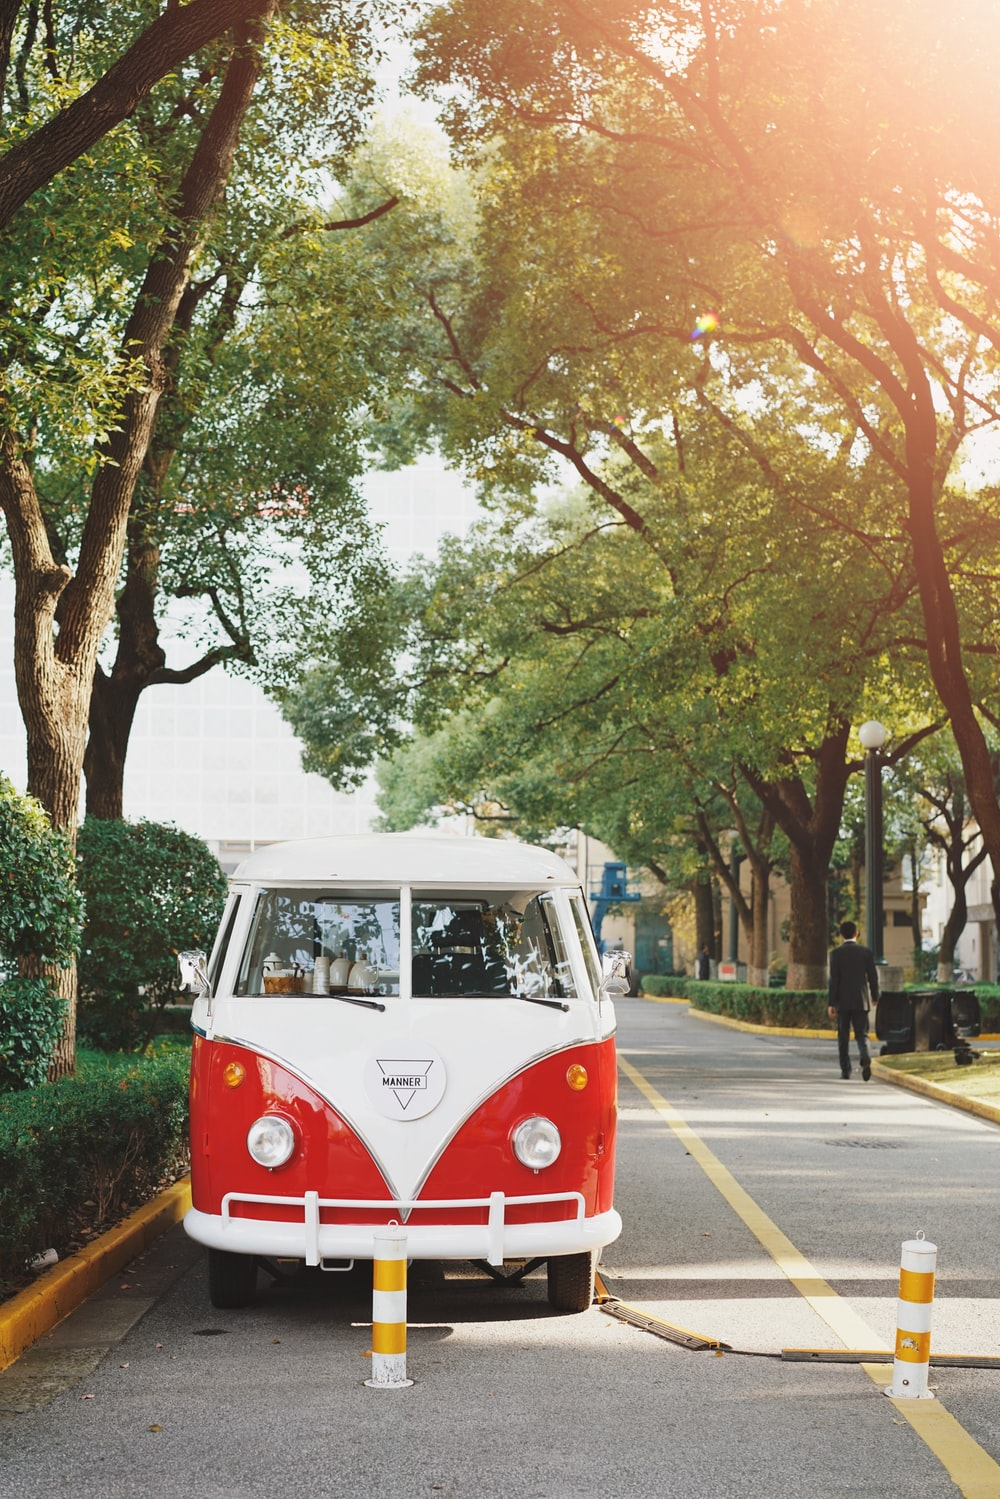 vintage white and red vehicle parked on road beside tree